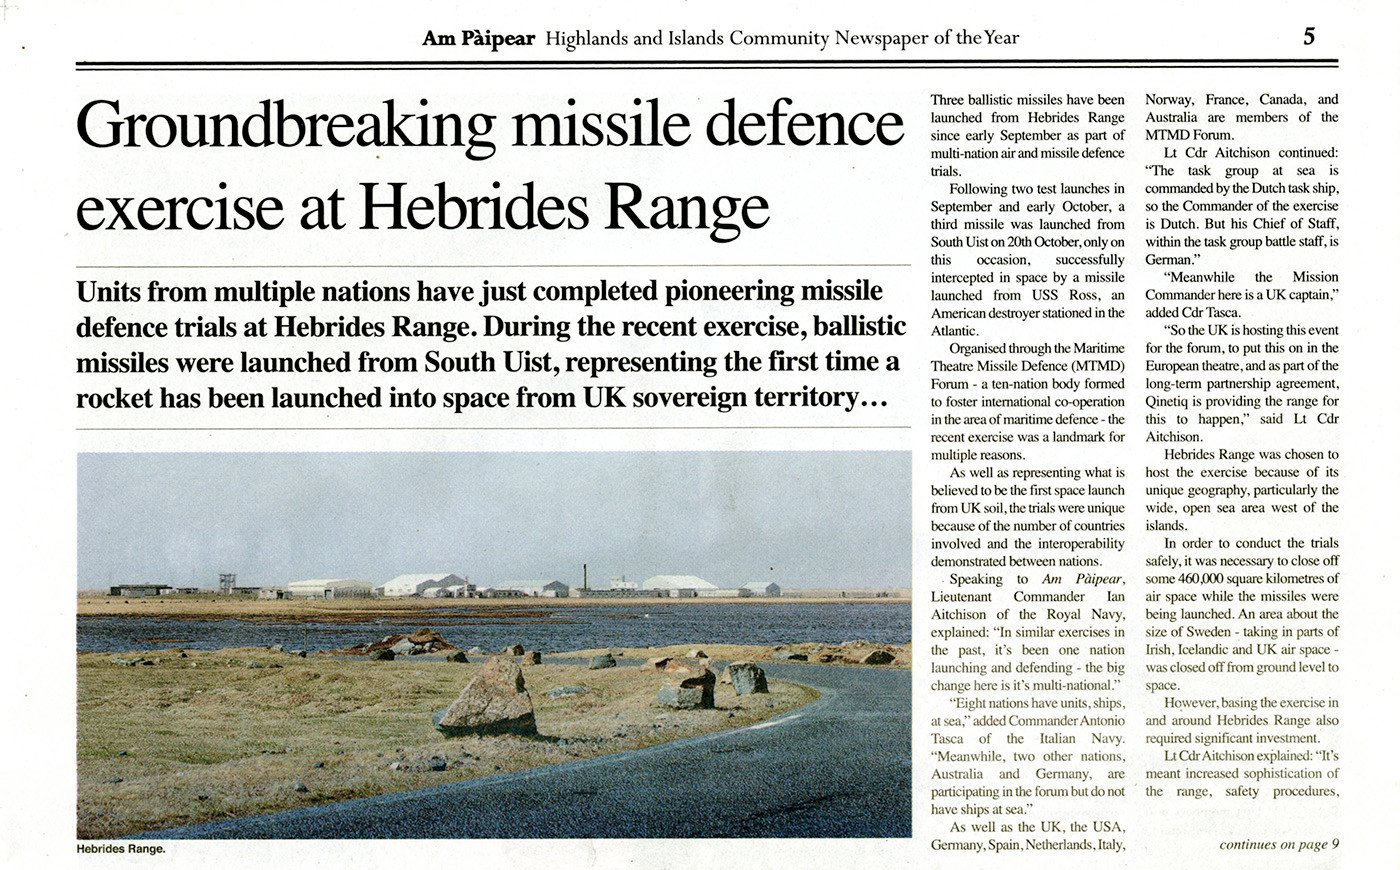 Ground Breaking Missile Defence exercise